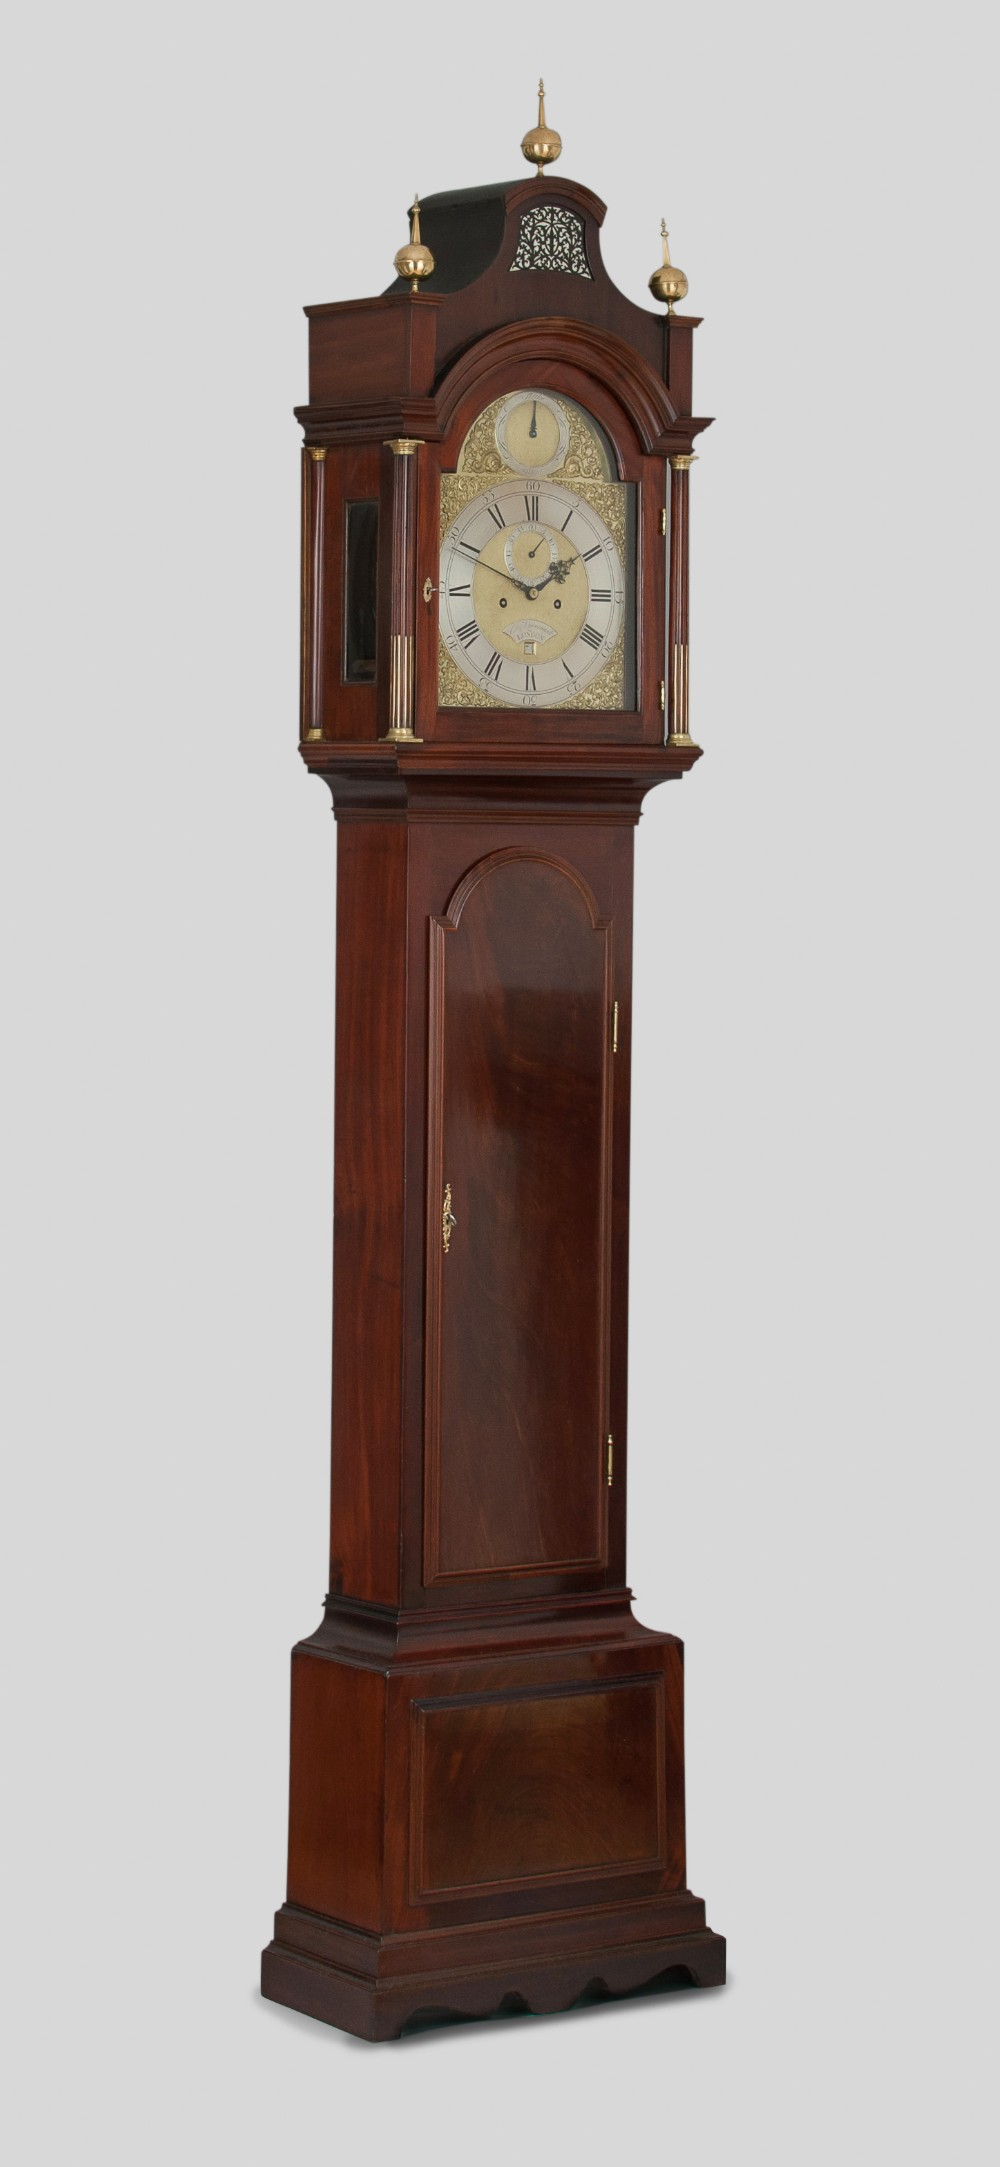 a fine quality flame mahogany london longcase grandfather clock circa 1760